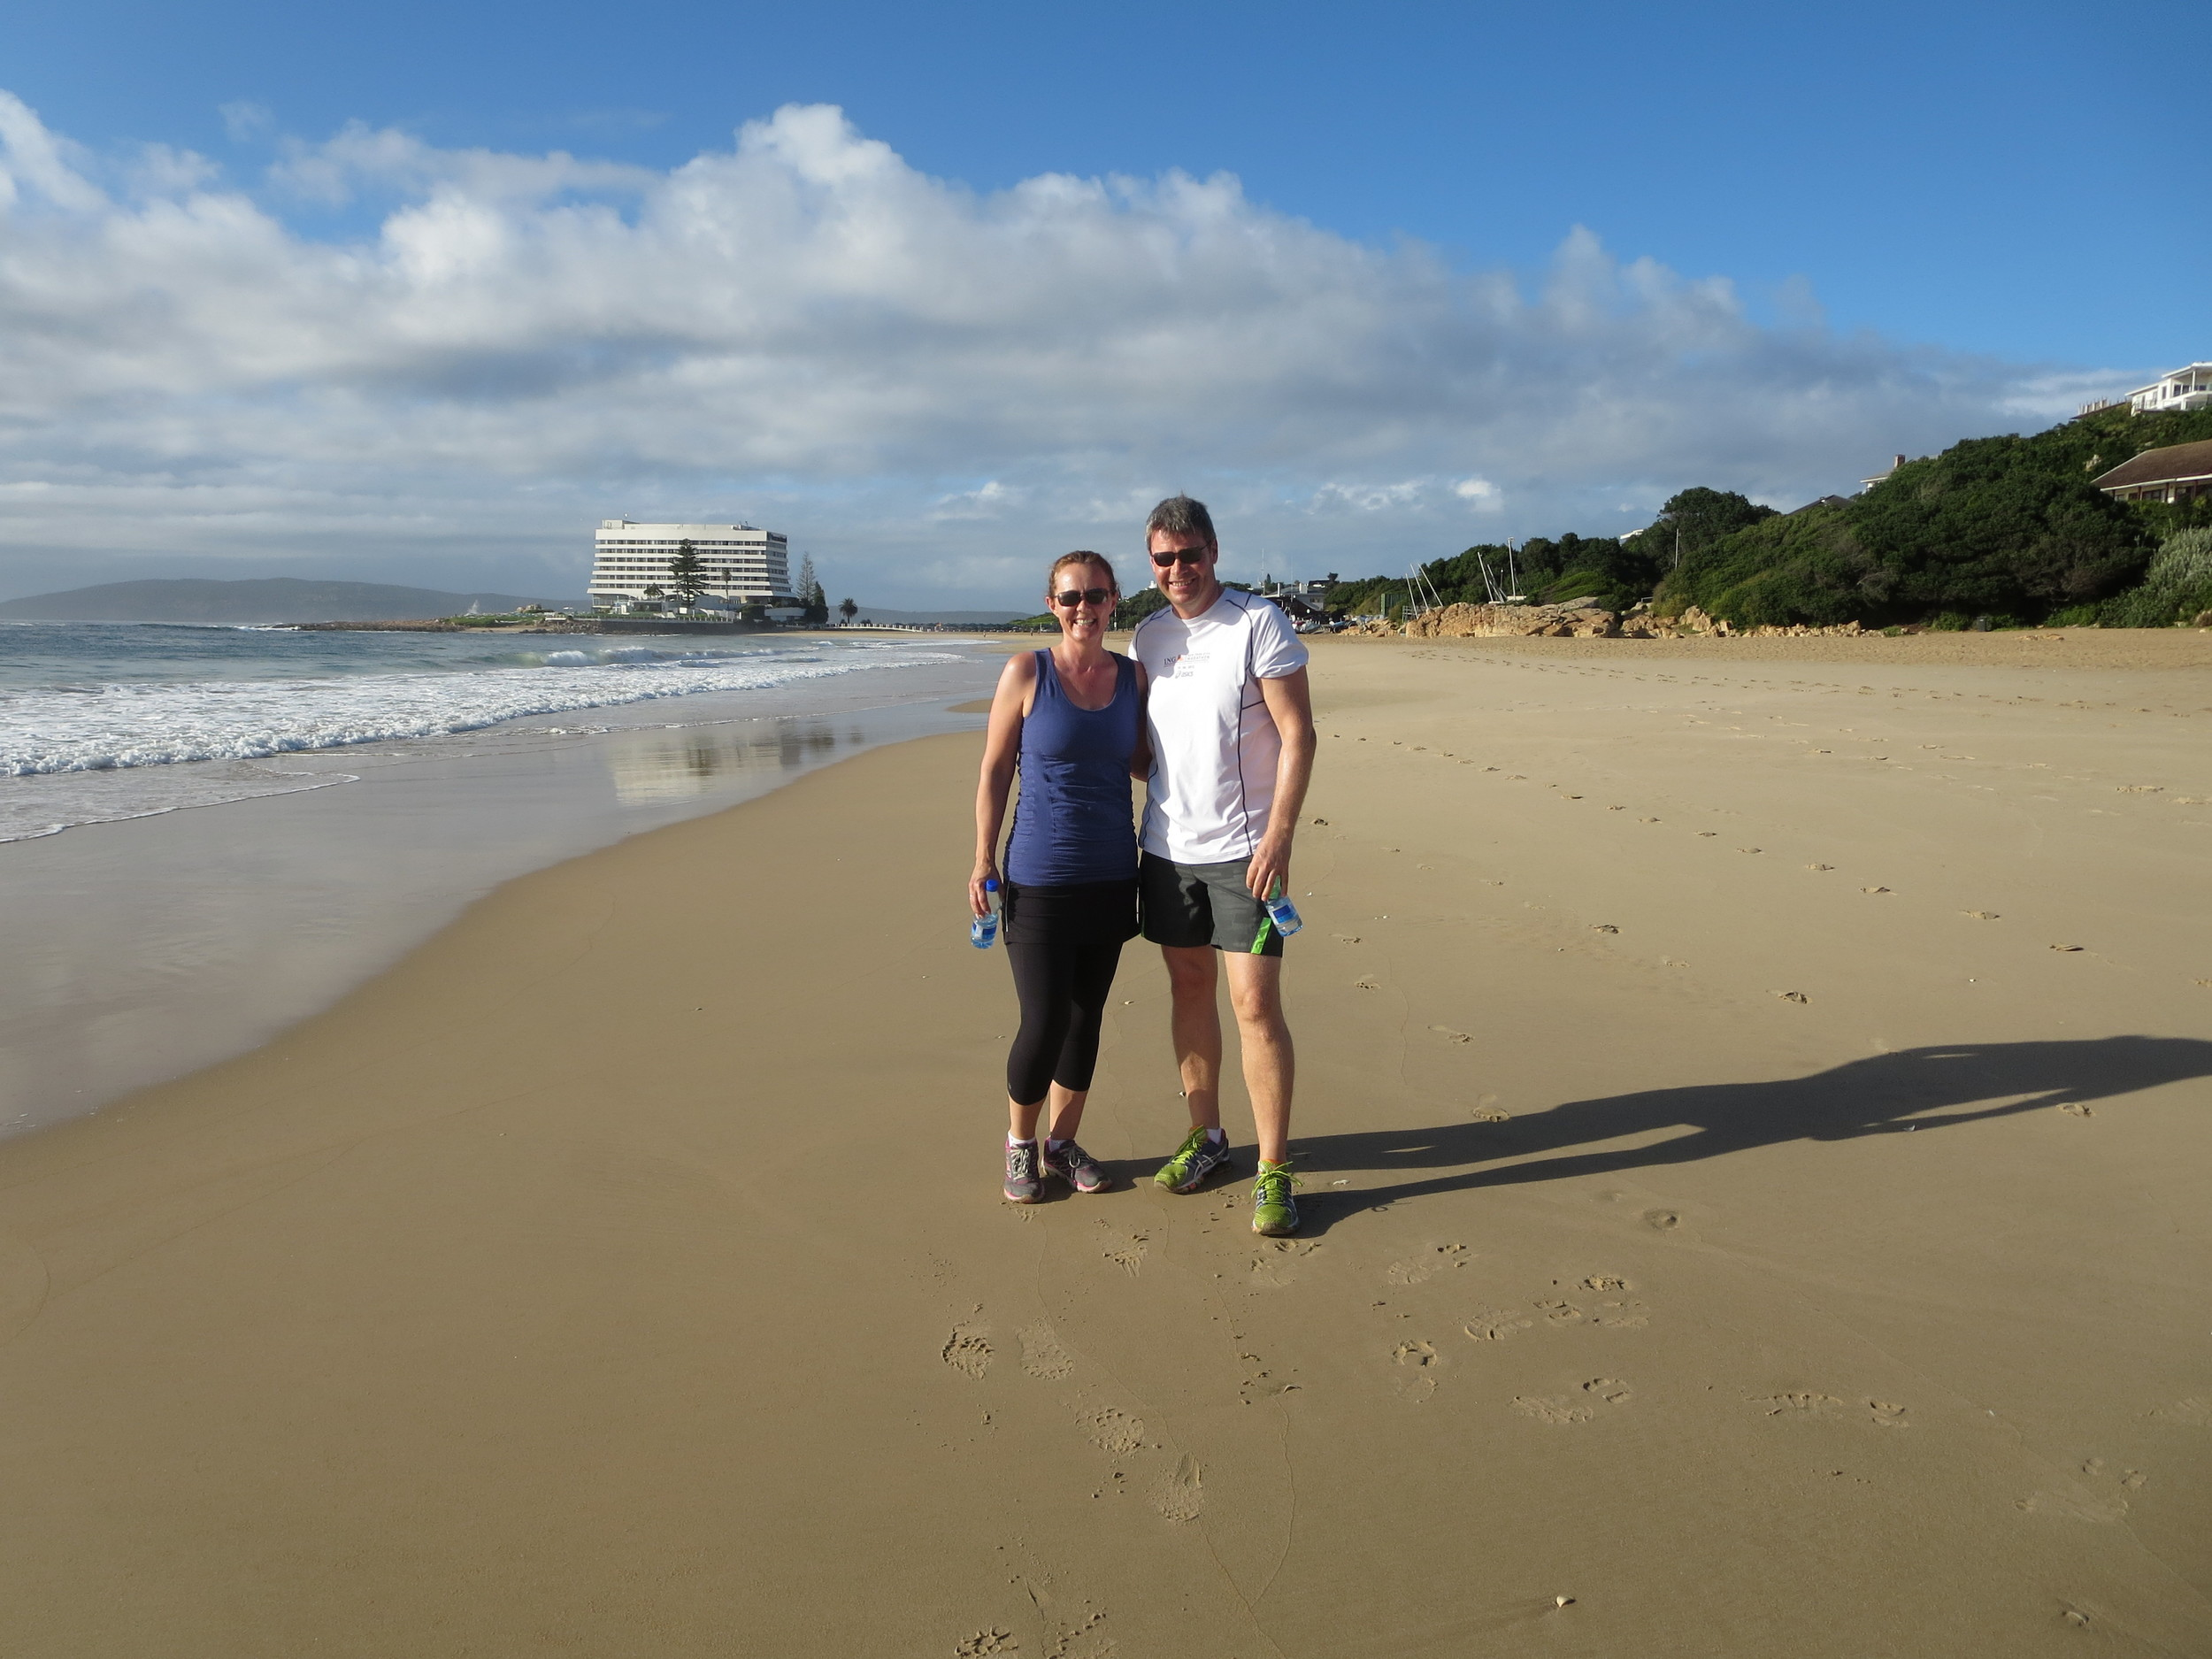 Morning walk on the beach at Plettenberg Bay